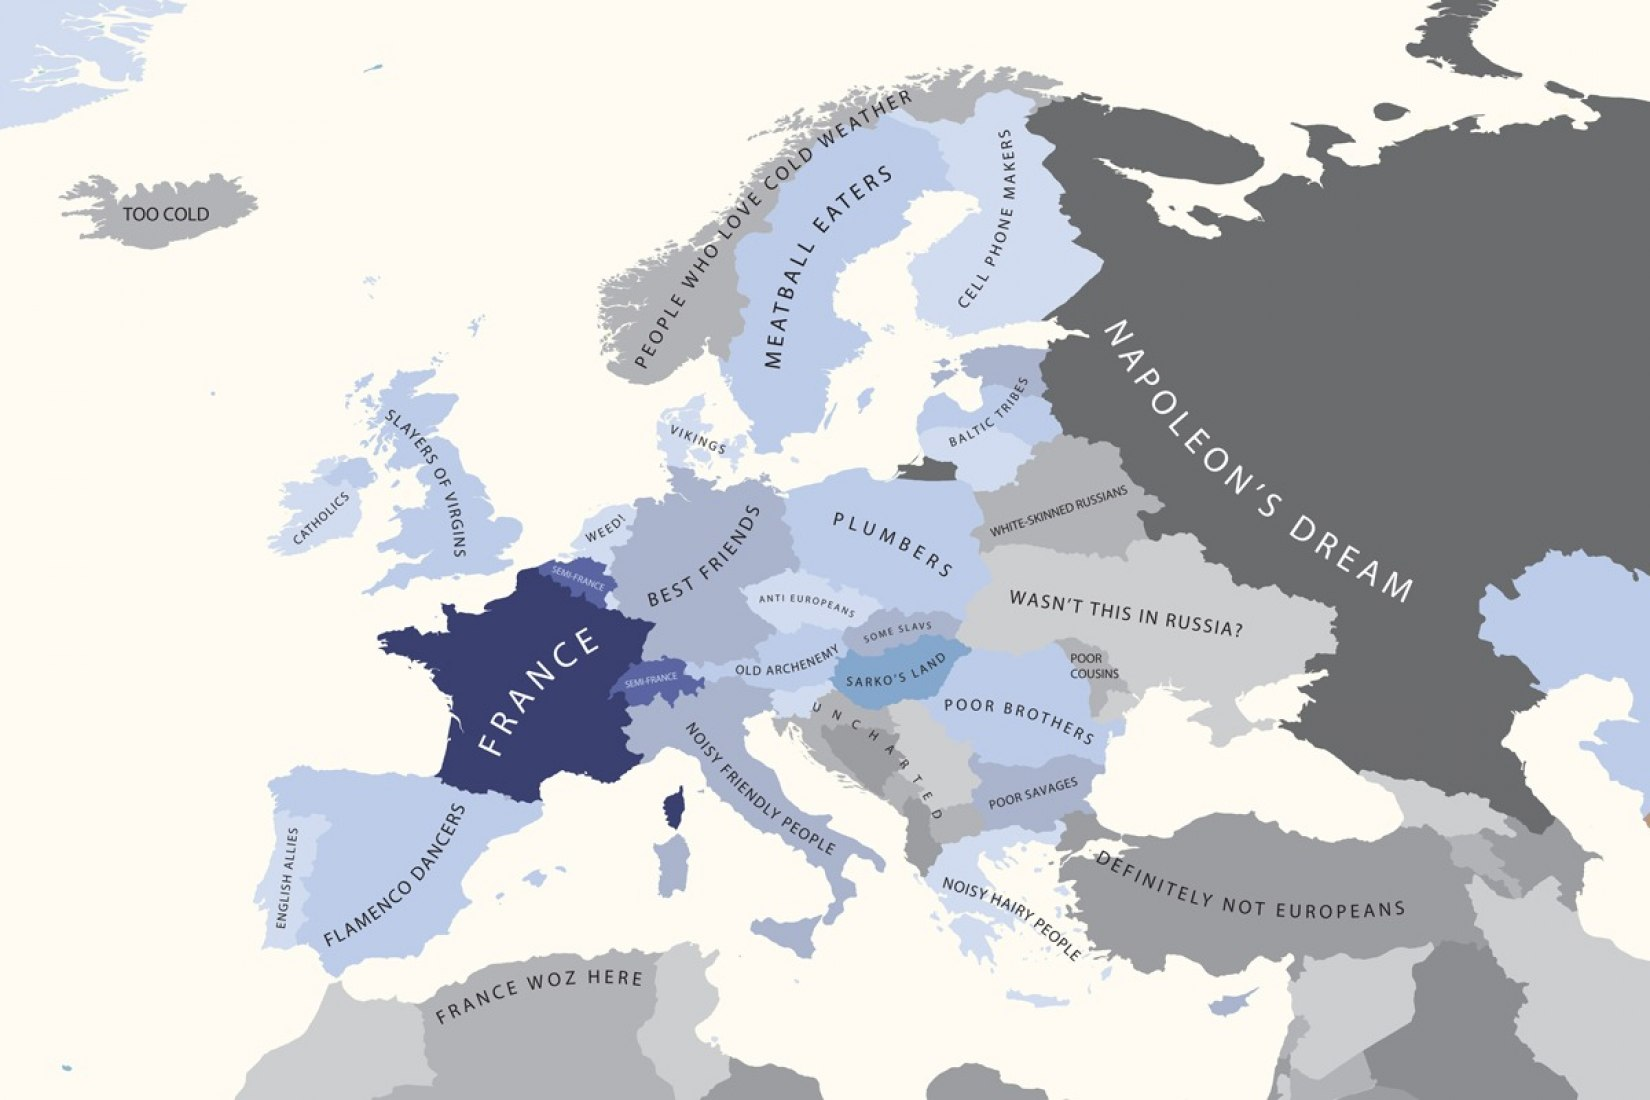 Europe According to France.